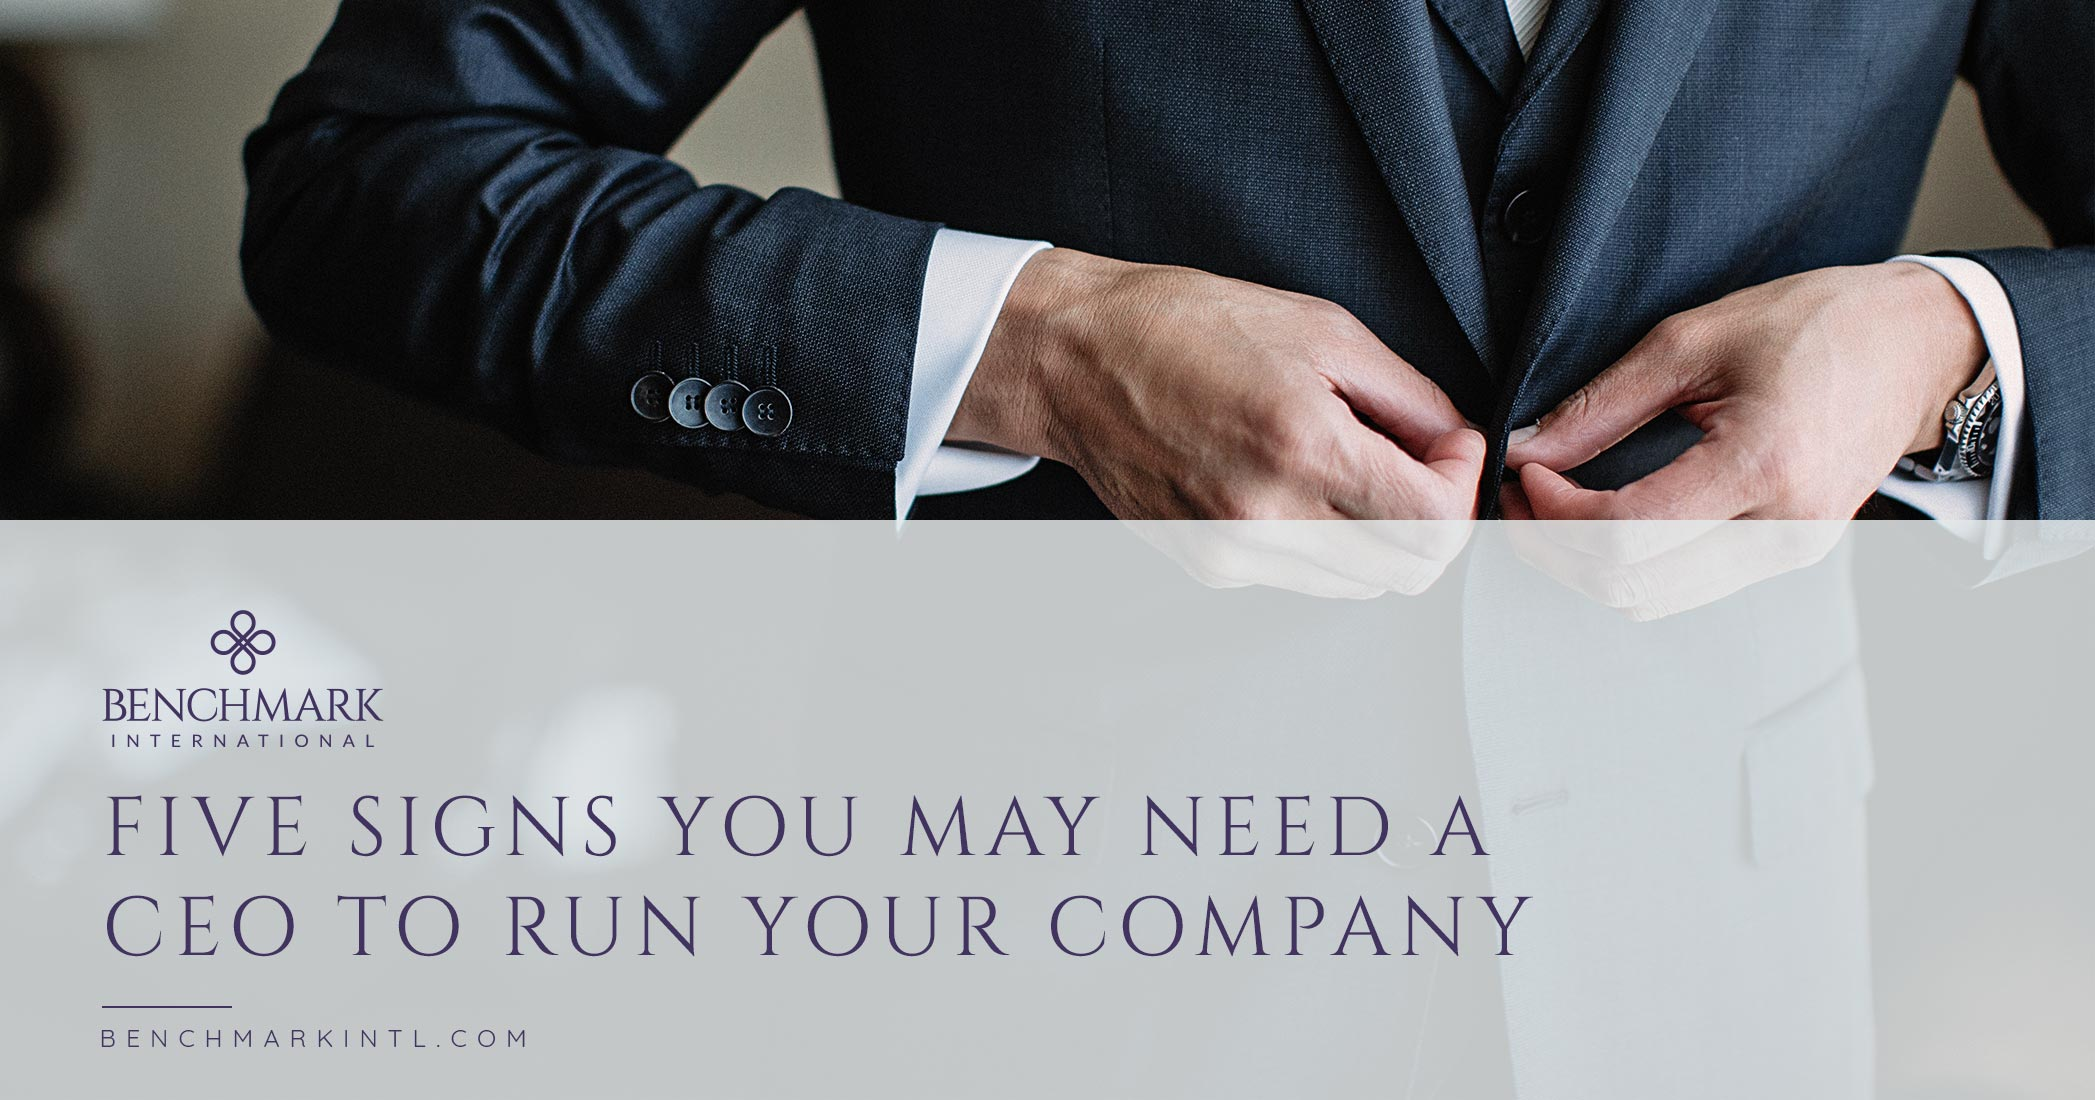 Five Signs You May Need a CEO to Run Your Company